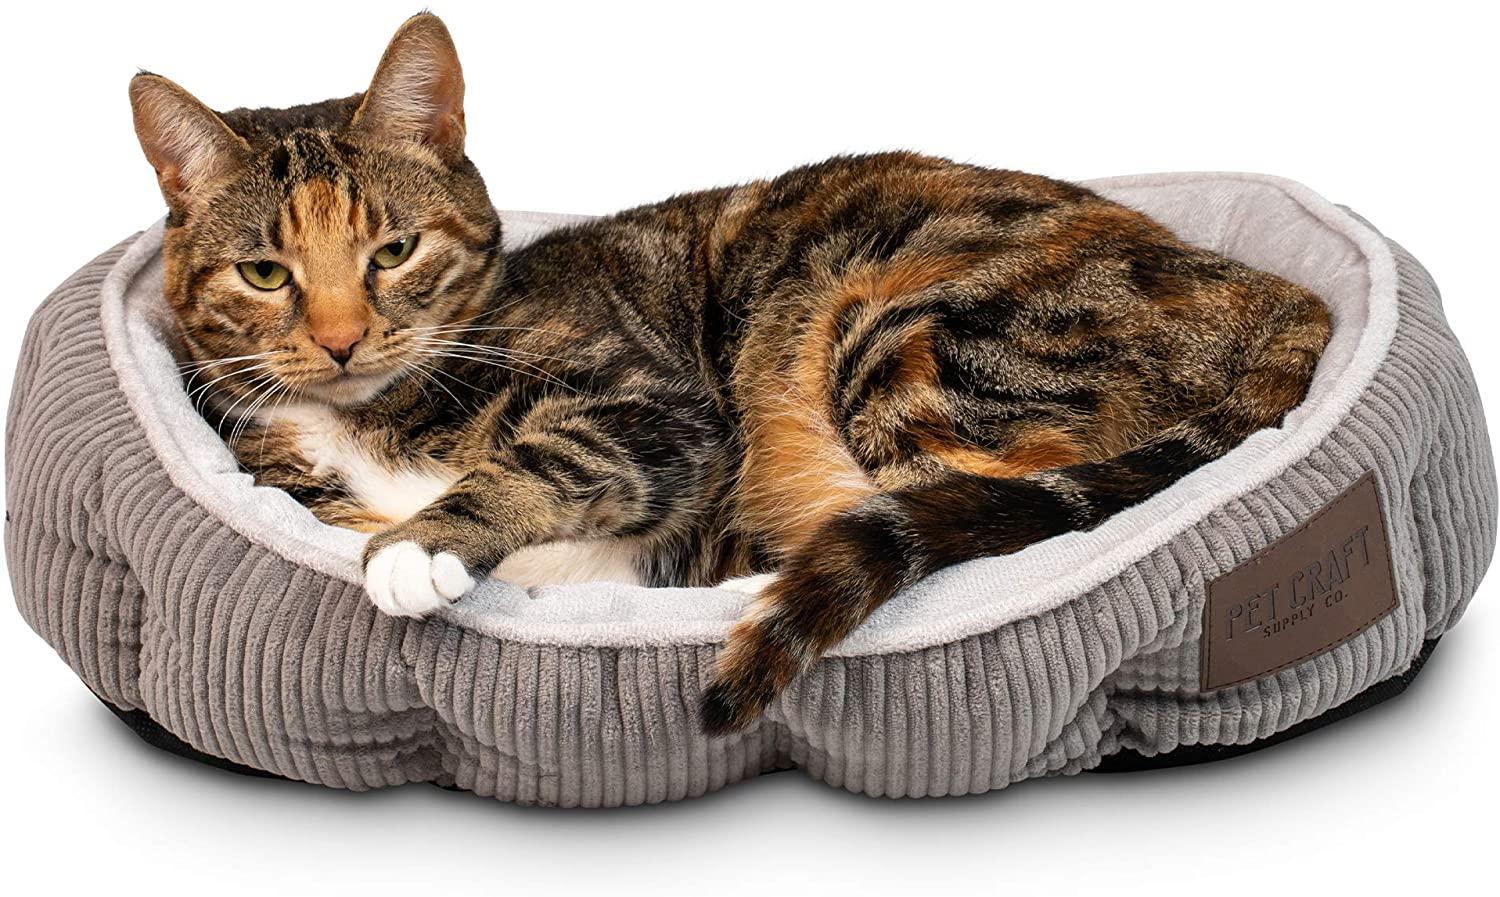 Pet Craft Supply Simple Sleeper Self Warming Cute Calming Cat Bed With Ultra Soft Luxury Plush Including Refillable Catnip Pouch Perfect For Indoor Cats Pet Supplies